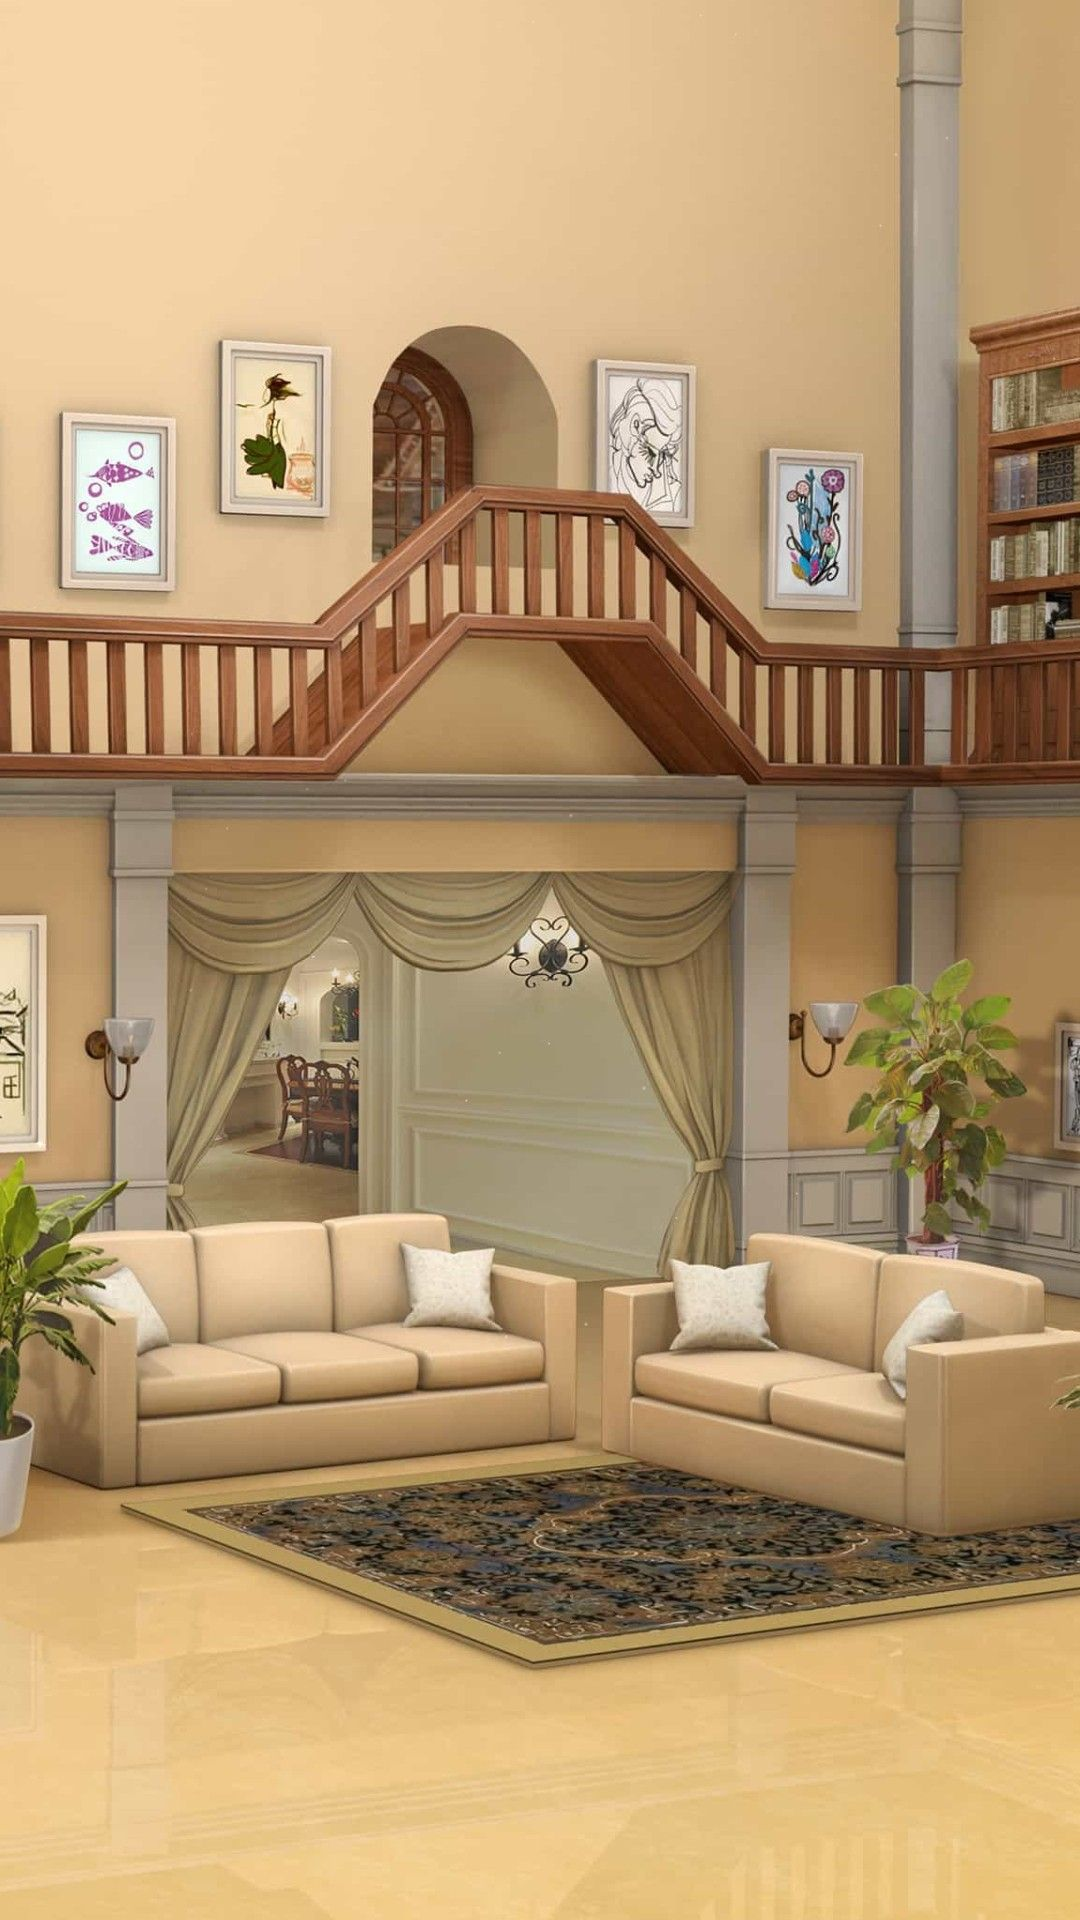 Pin By Anthony Roth On Choices Game Backgrounds Mansion Living Living Room Background Episode Backgrounds